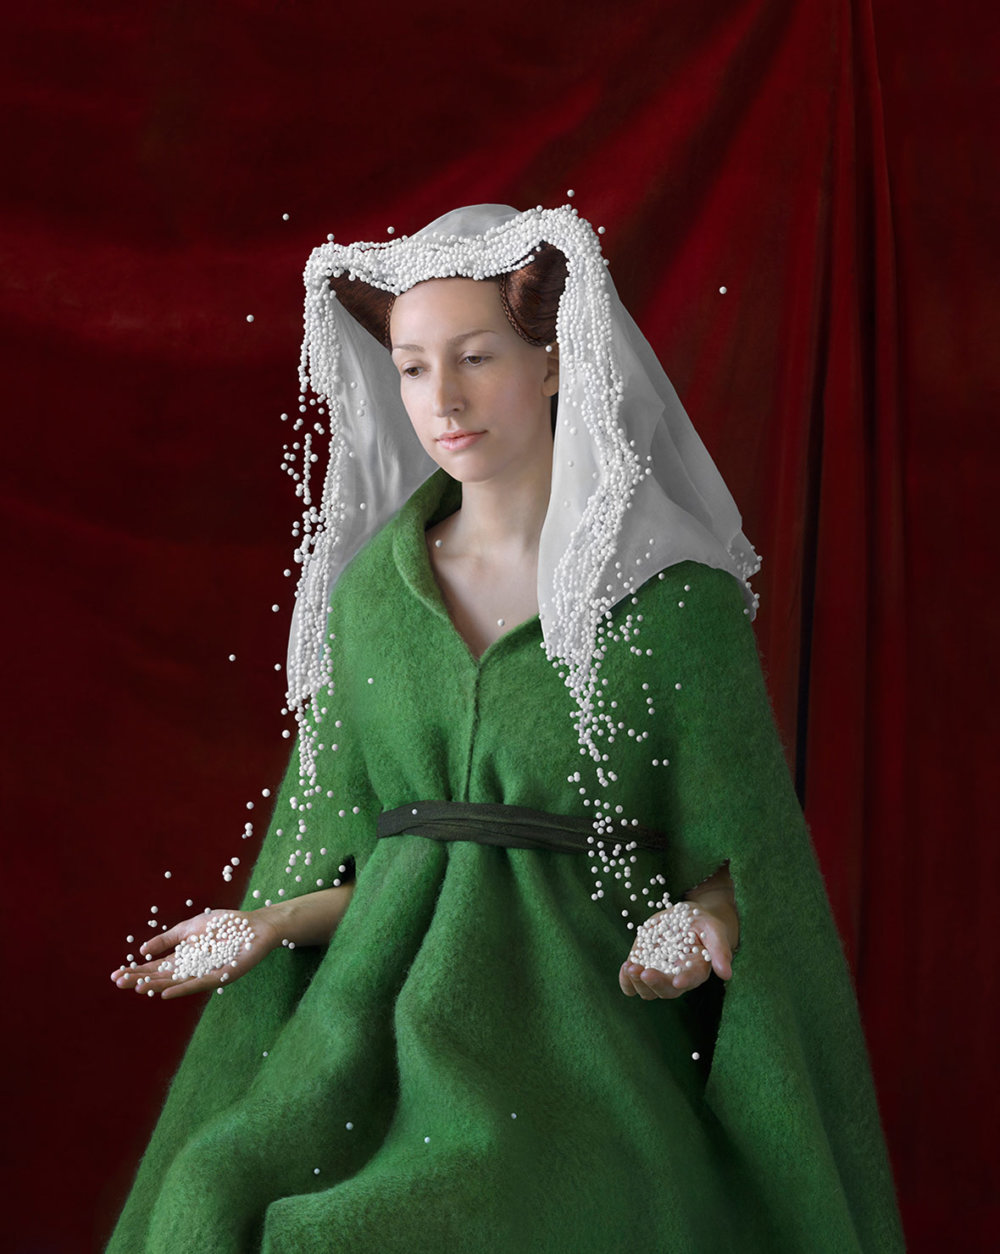 Discarded Packaging Recycled Into Renaissance Costumes By Suzanne Jongmans 7